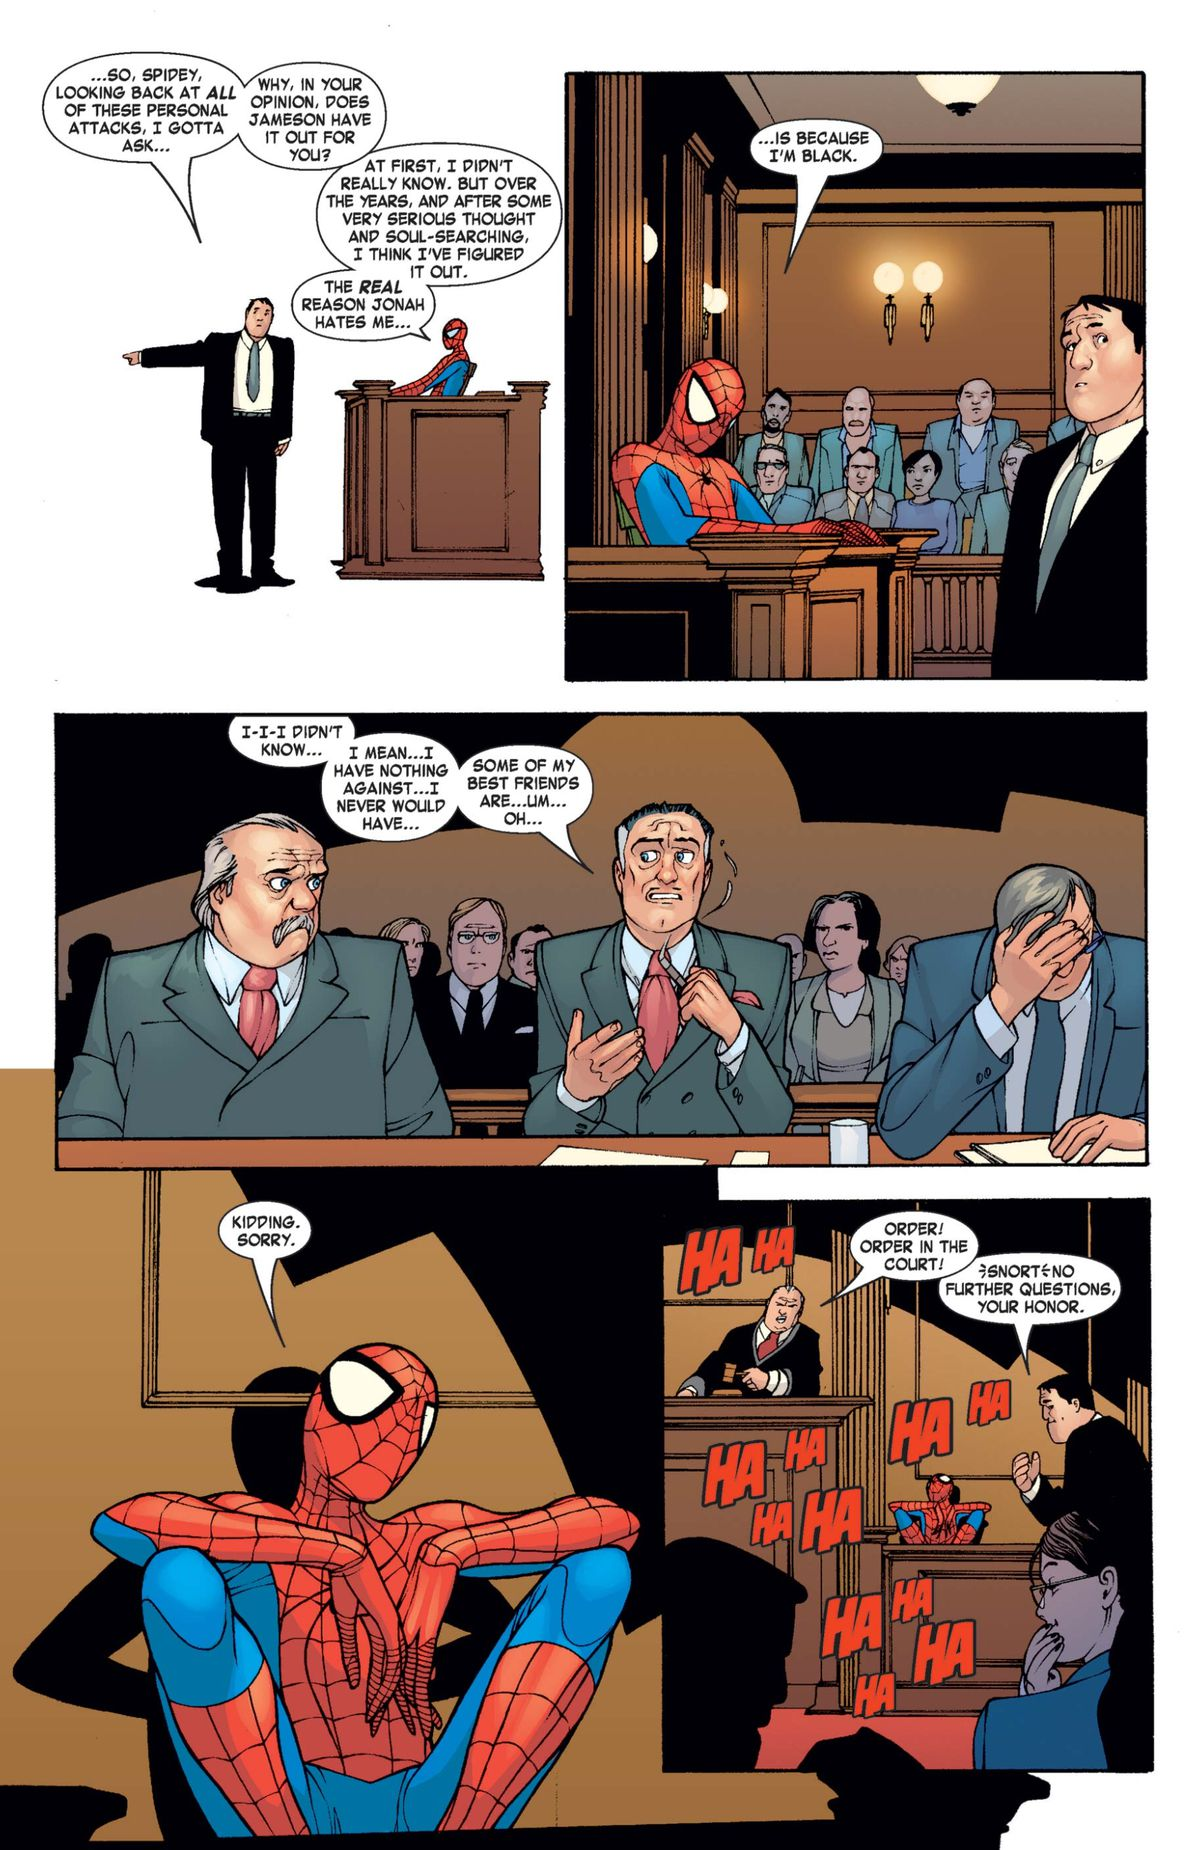 Spider-Man on the stand while suing J. Jonah Jameson for libel in She-Hulk #4, Marvel Comics (2004).